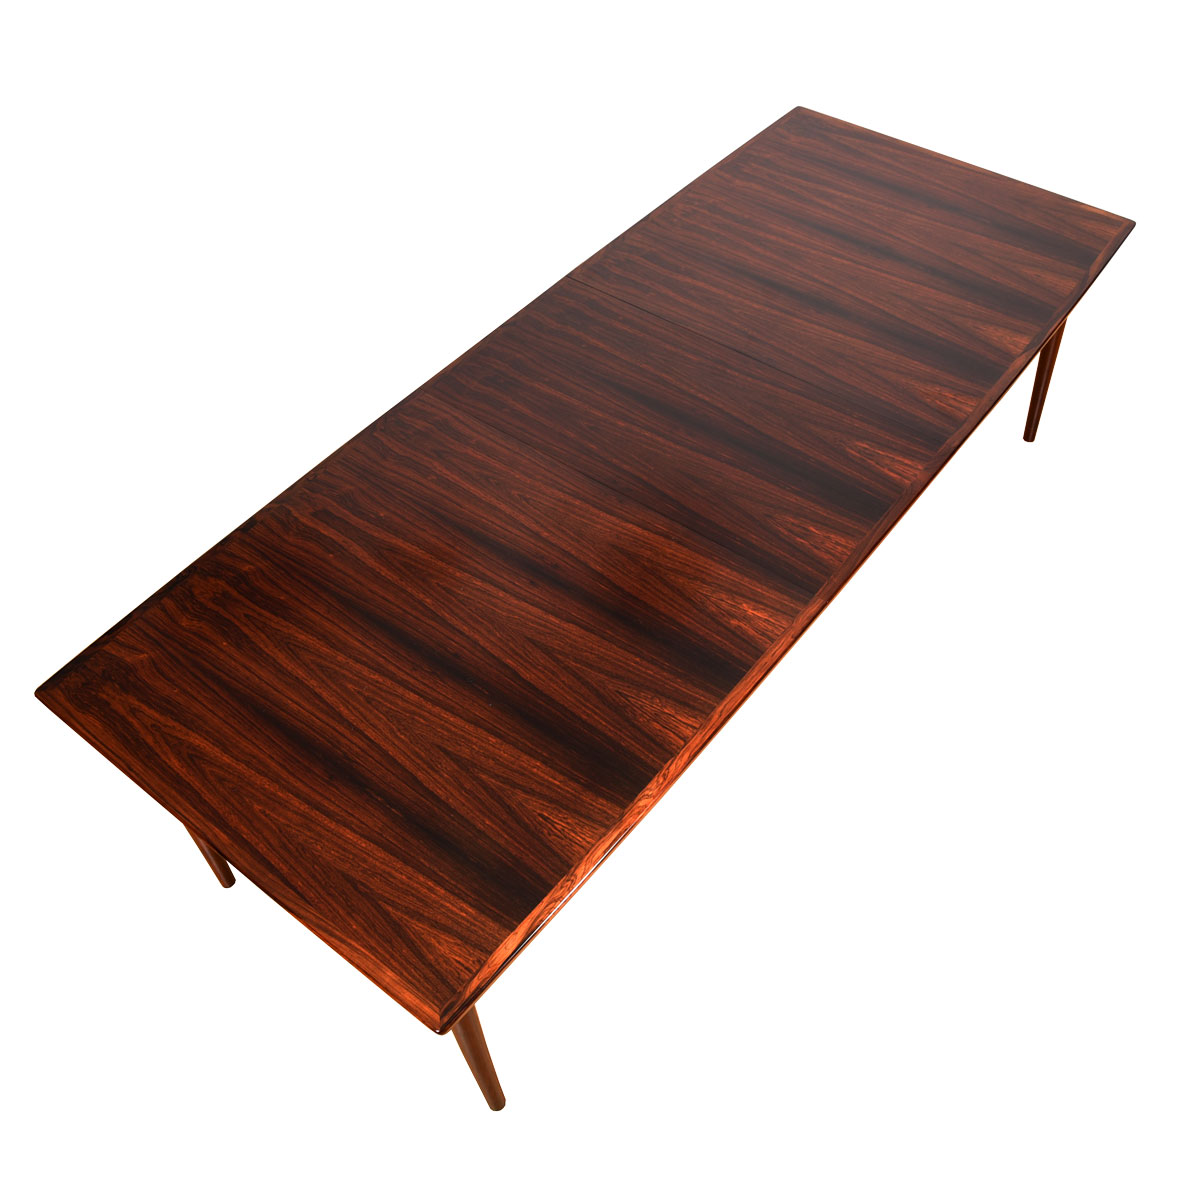 Sibast Danish Rosewood Expanding Dining Table by Arne Vodder